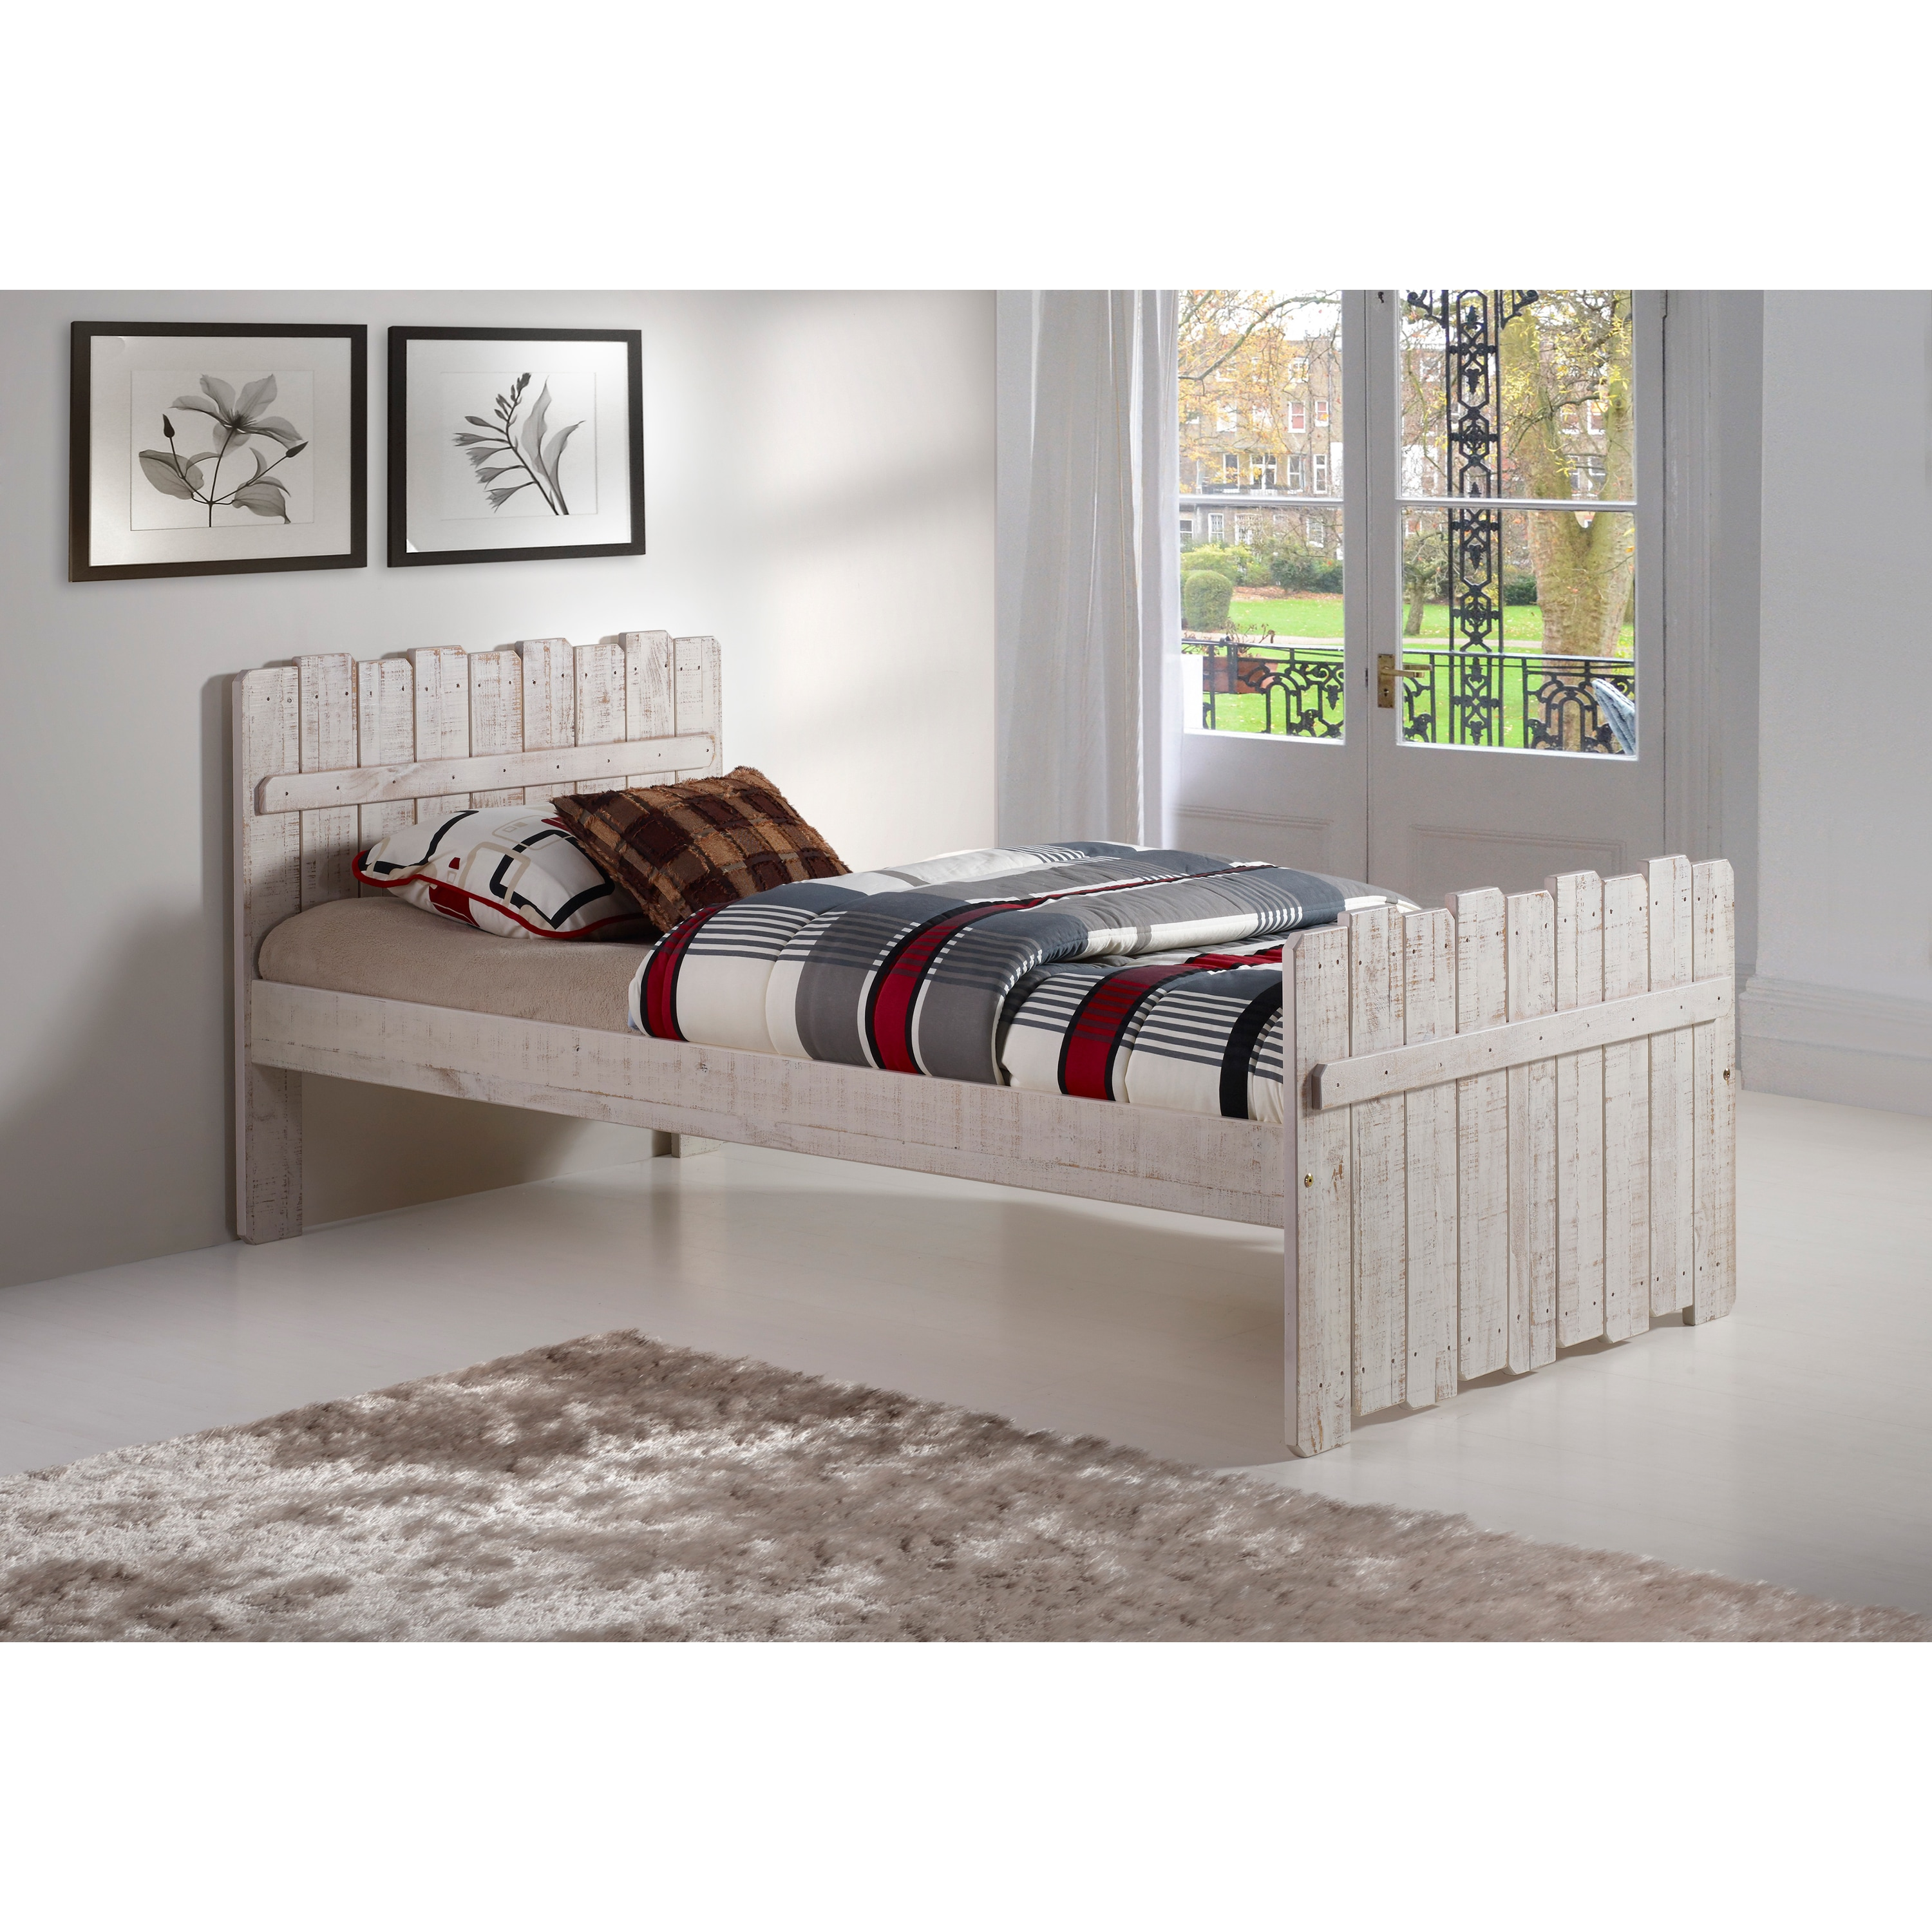 Donco Kids Rustic Sand Twin Tree House Bed (Twin Bed), Be...